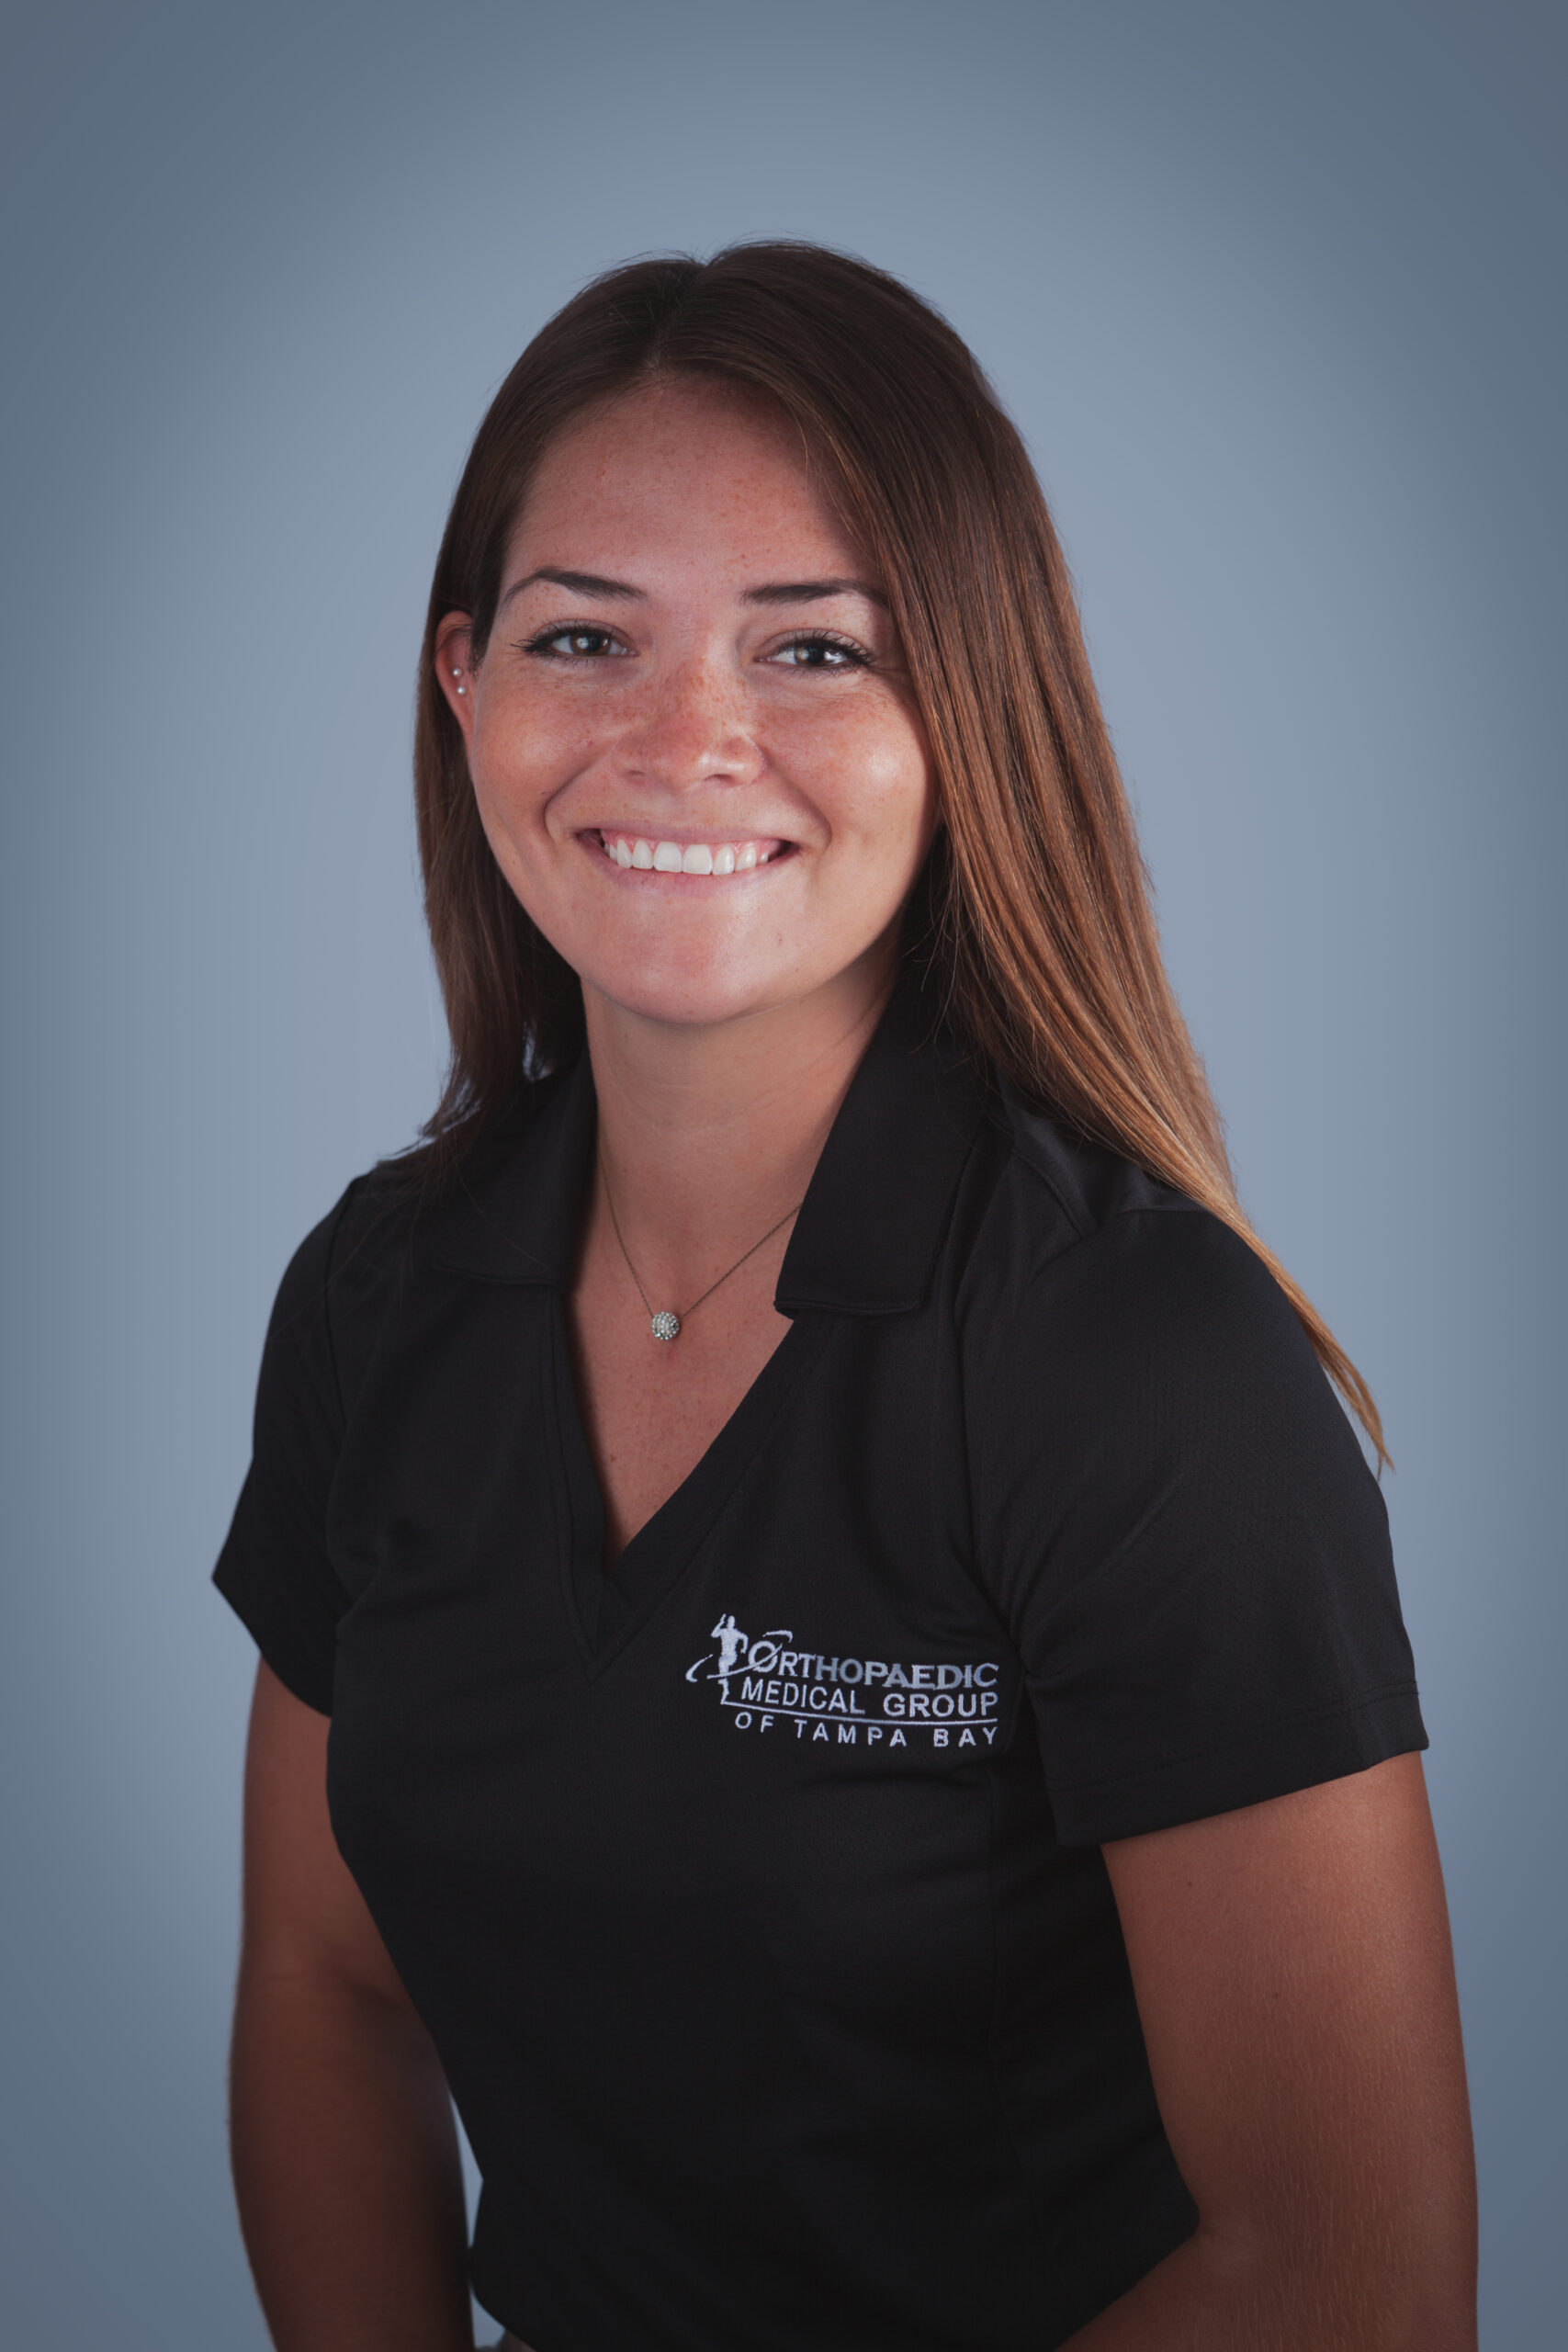 Breanna Taphouse - Athletic Trainer at Orthopaedic Medical Group of Tampa Bay